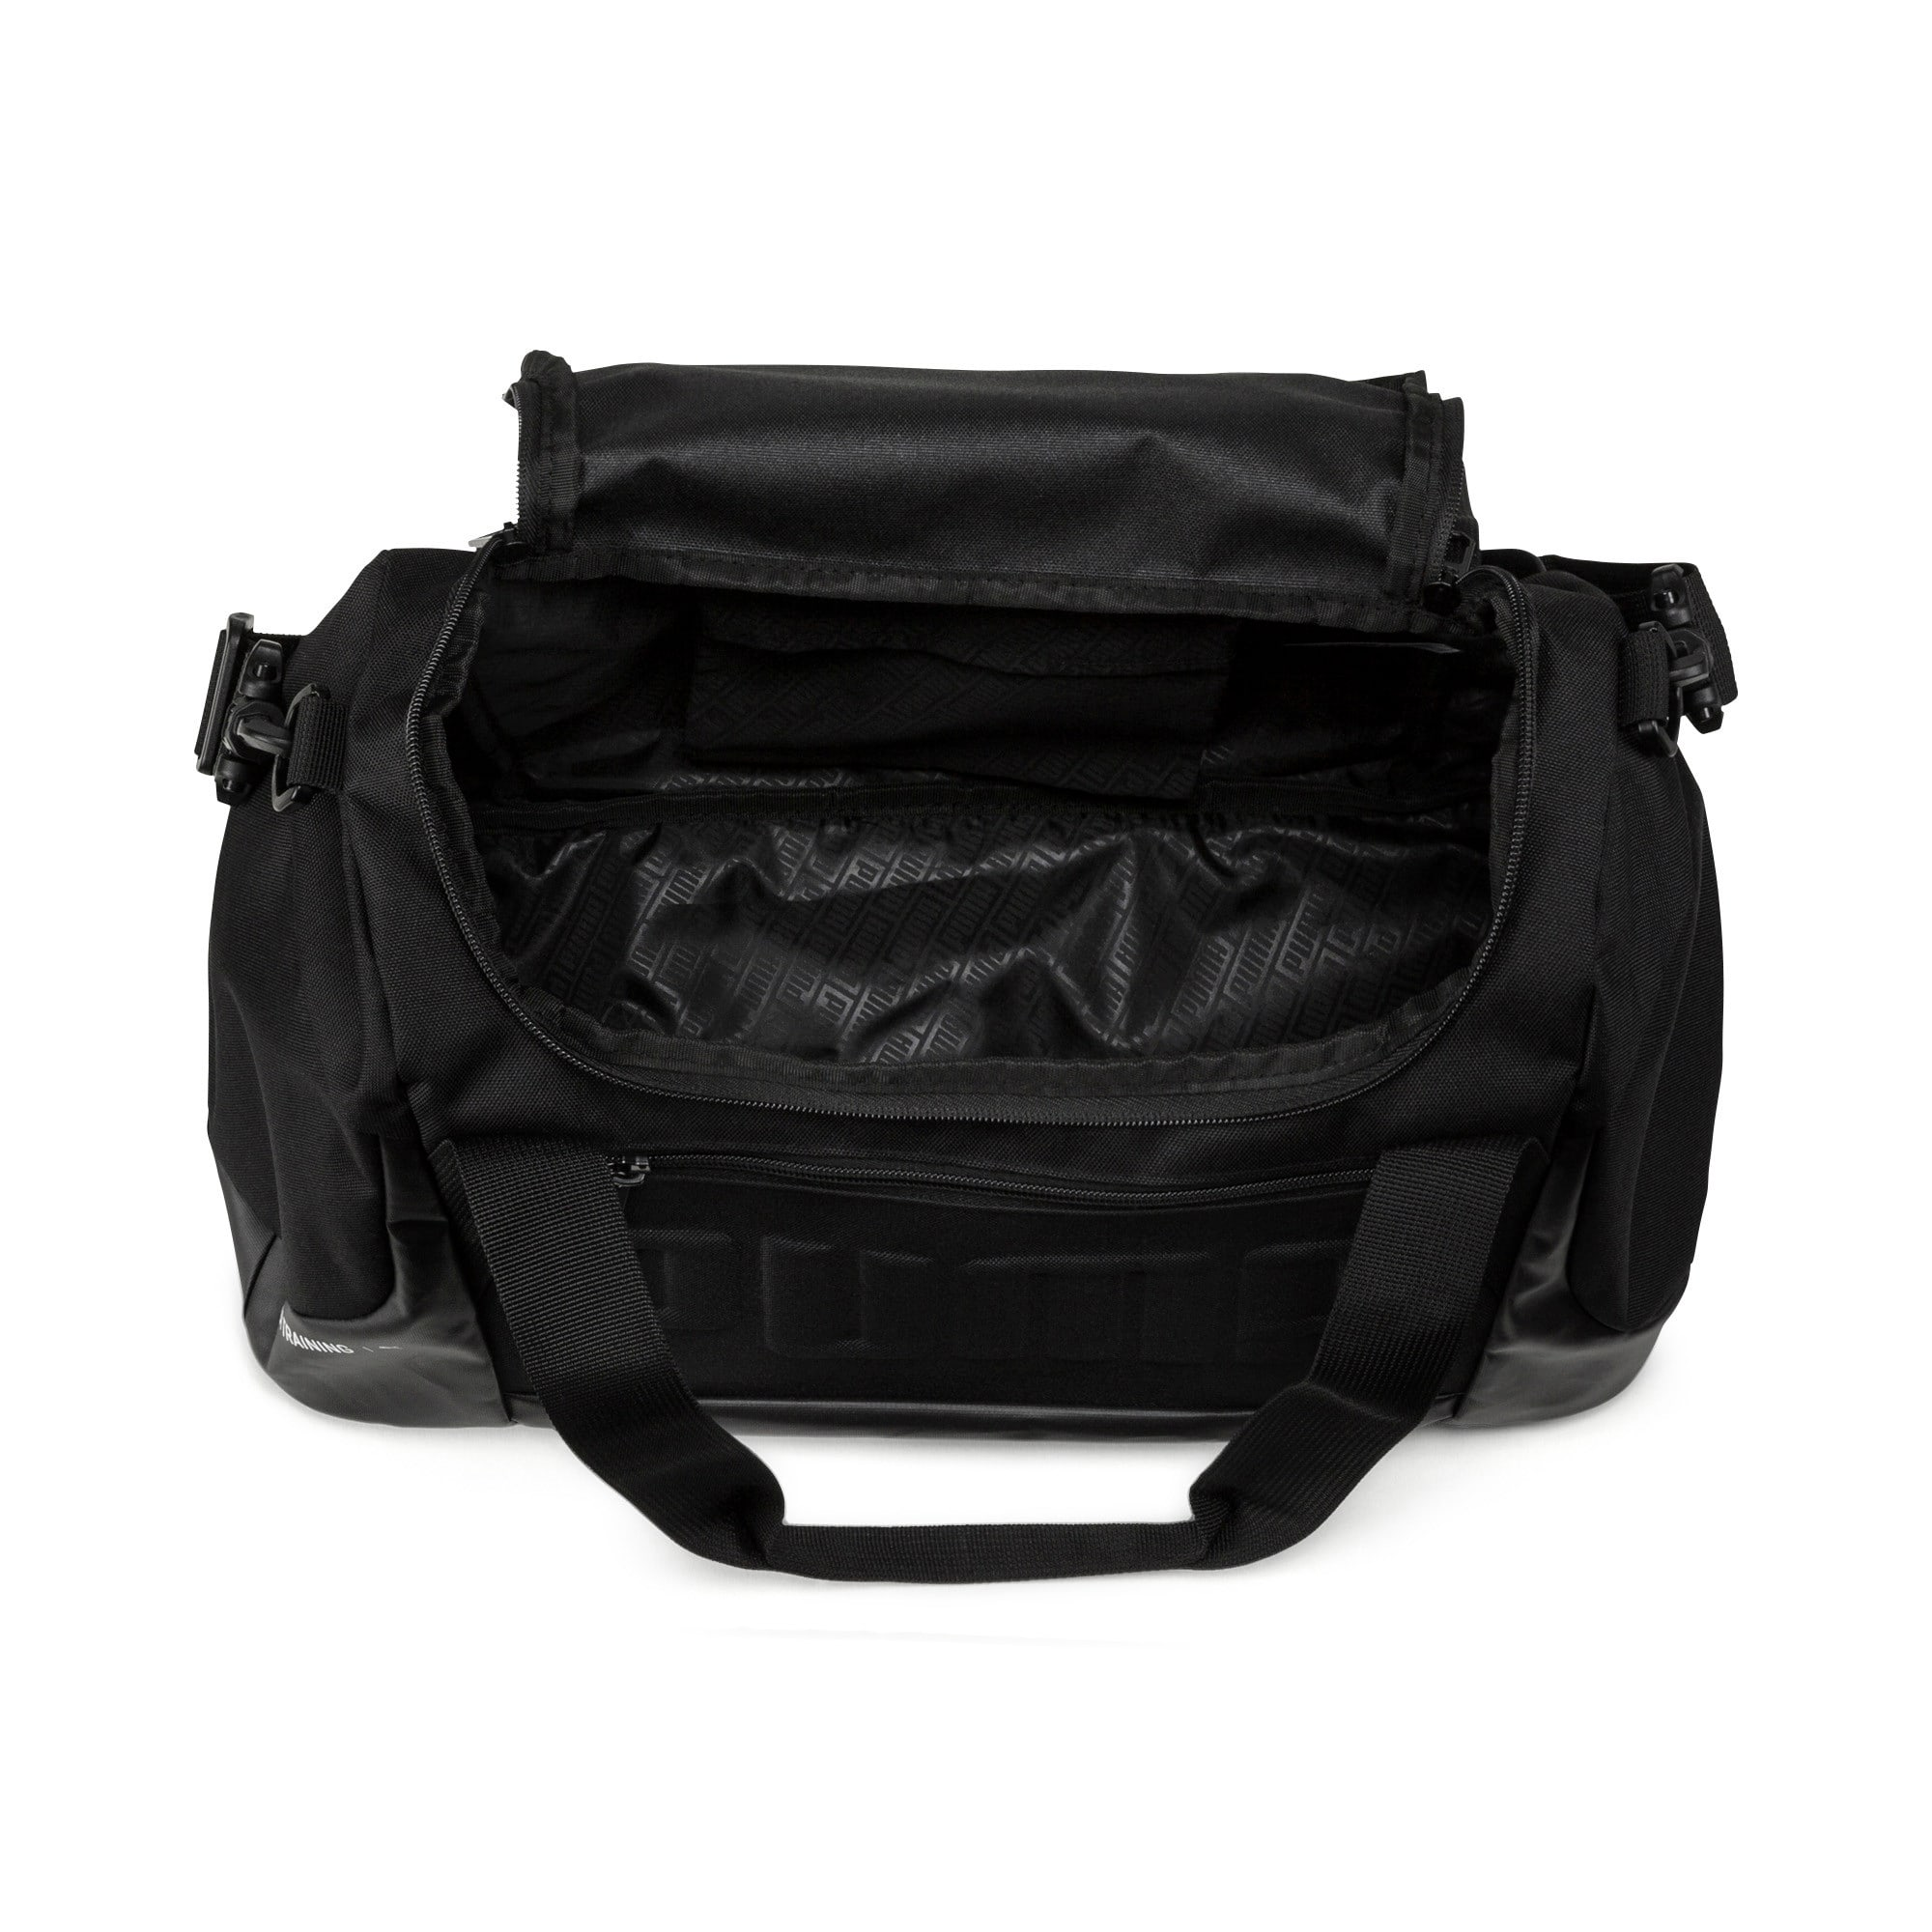 Thumbnail 3 of Gym Duffel Bag, Puma Black, medium